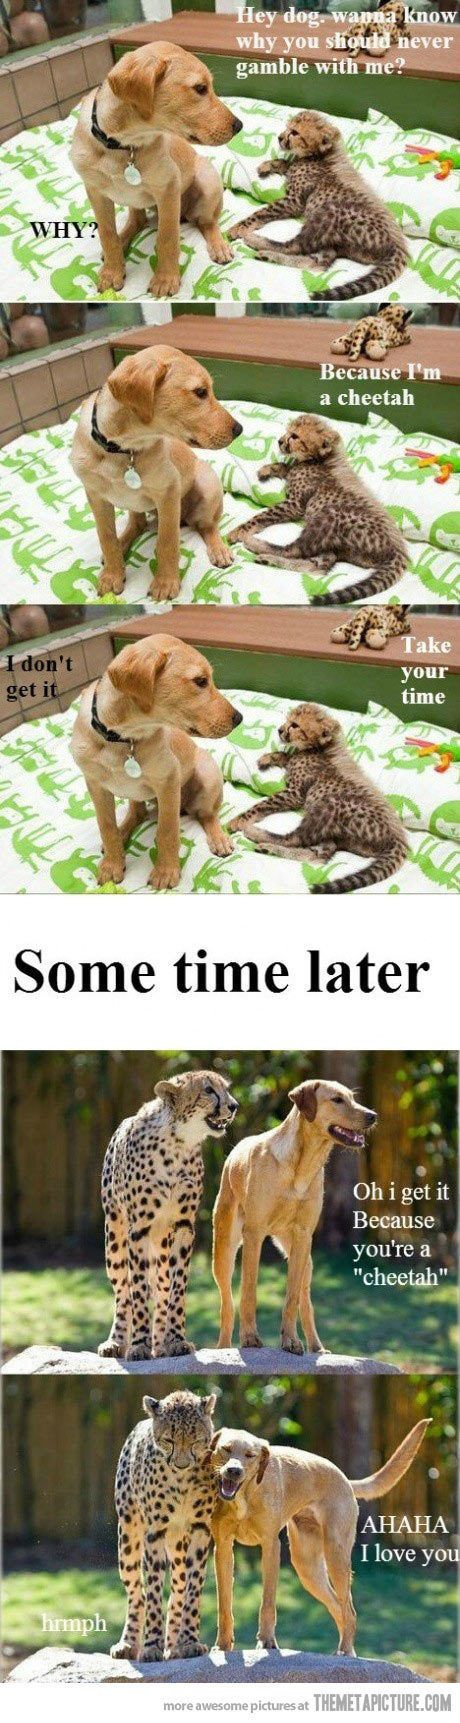 Take your time... on we heart it / visual bookmark #55323029